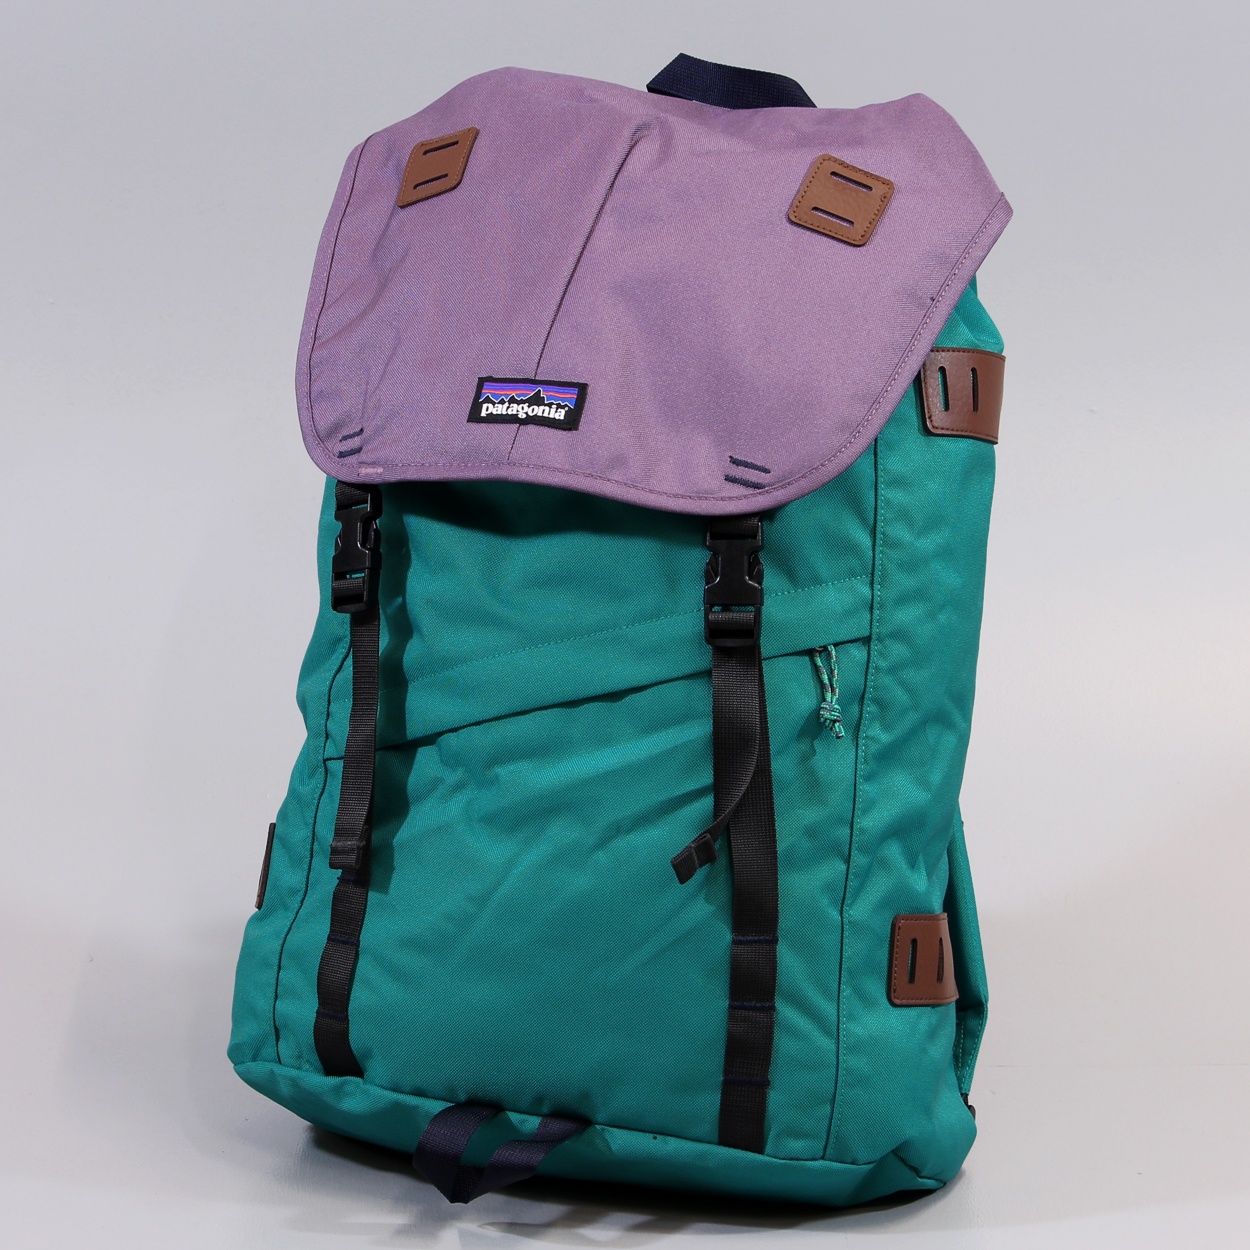 a34dd55655 Patagonia Arbor Pack 26L Emerald Green Purple Mountain Summit Bag £41.25